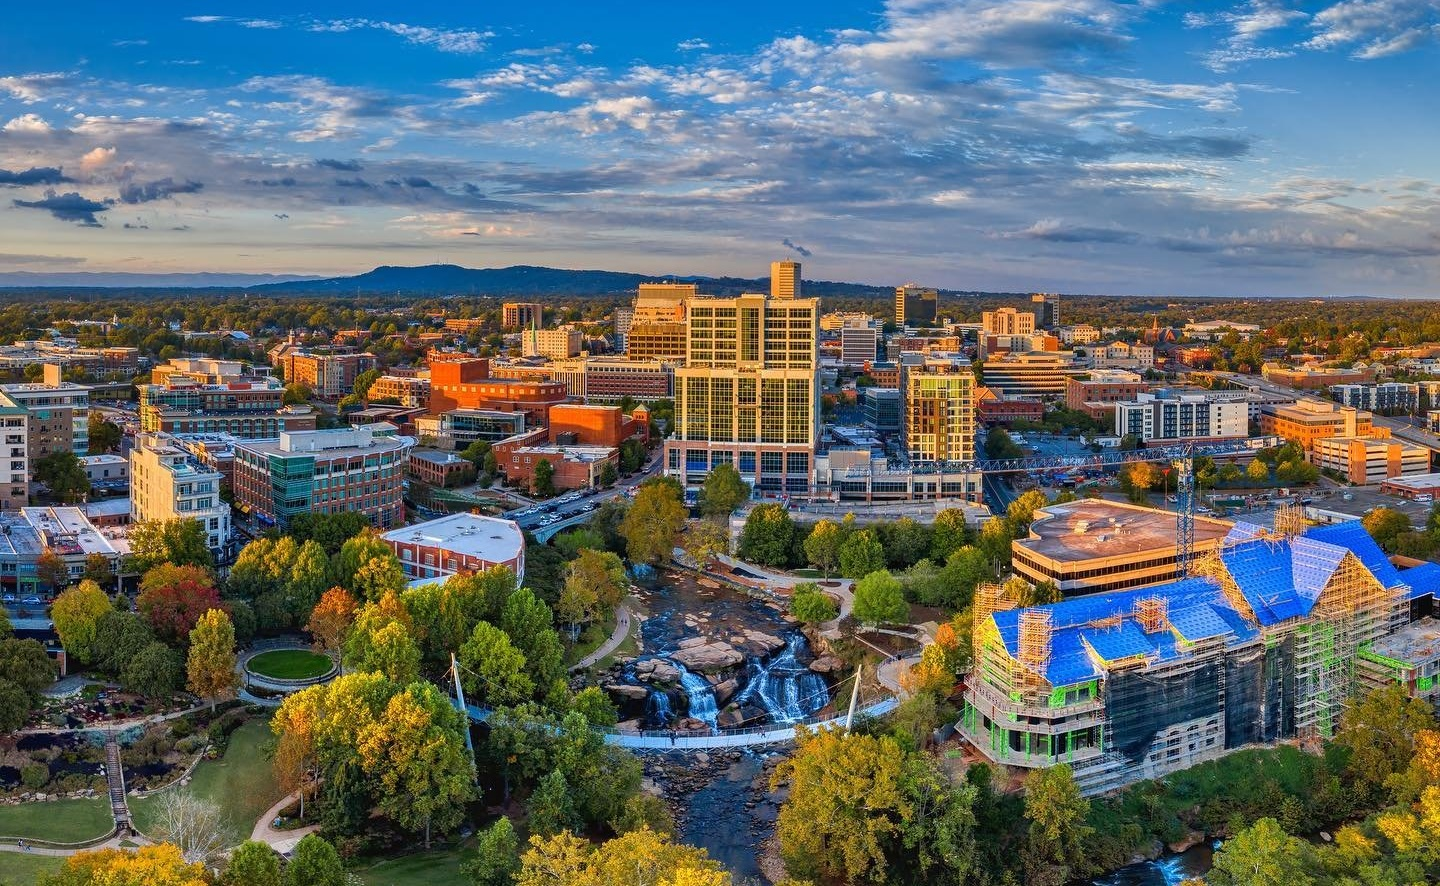 aerial view of the City of Greenville, Vanzeppelin photography